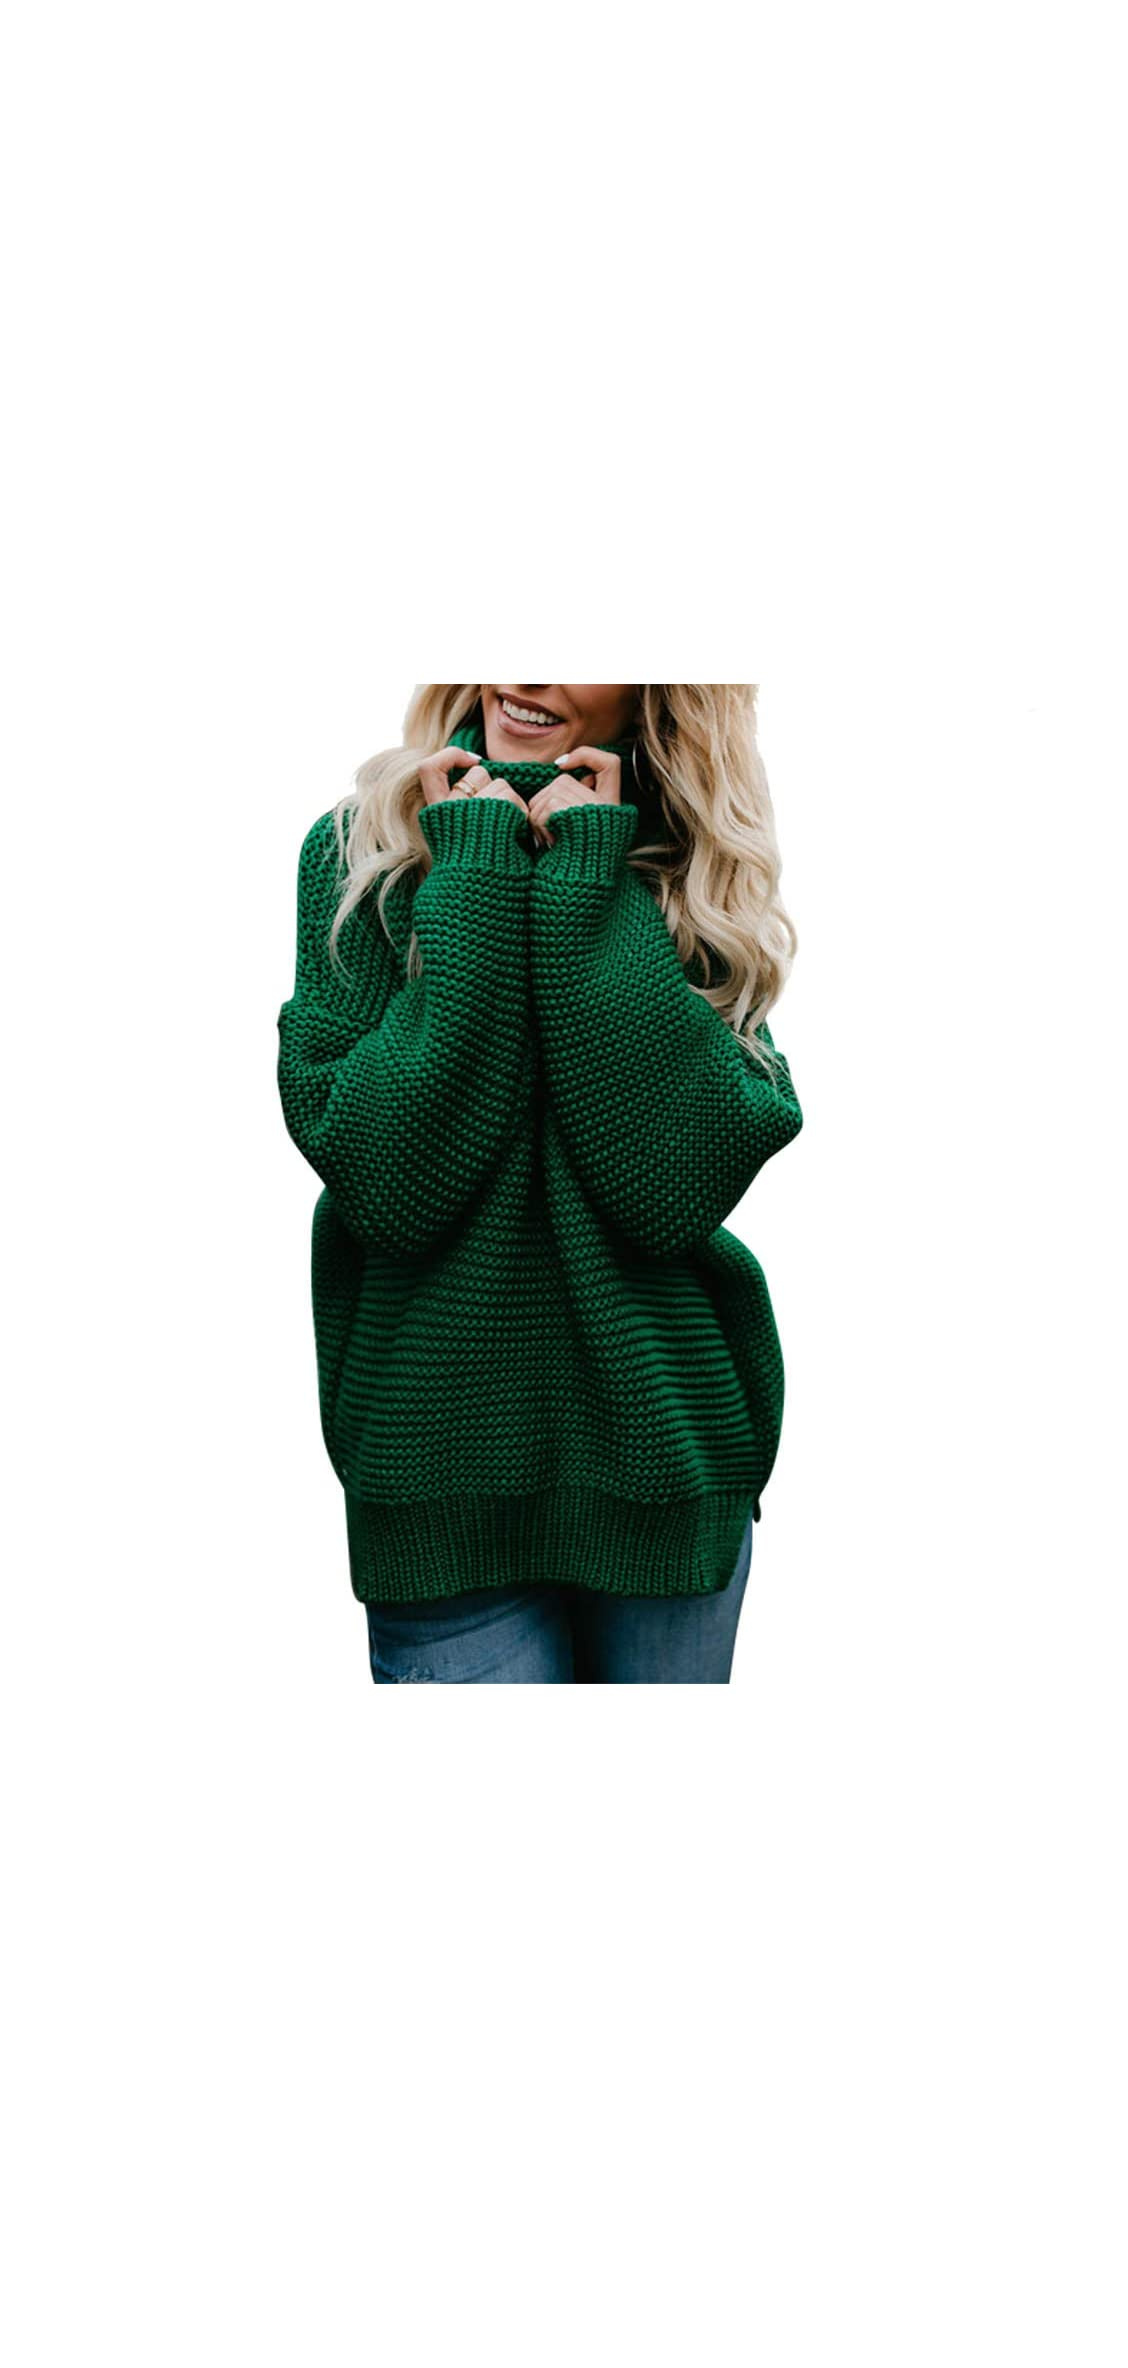 Women's Casual Long Sleeve Chunky Turtleneck Knit Sweater